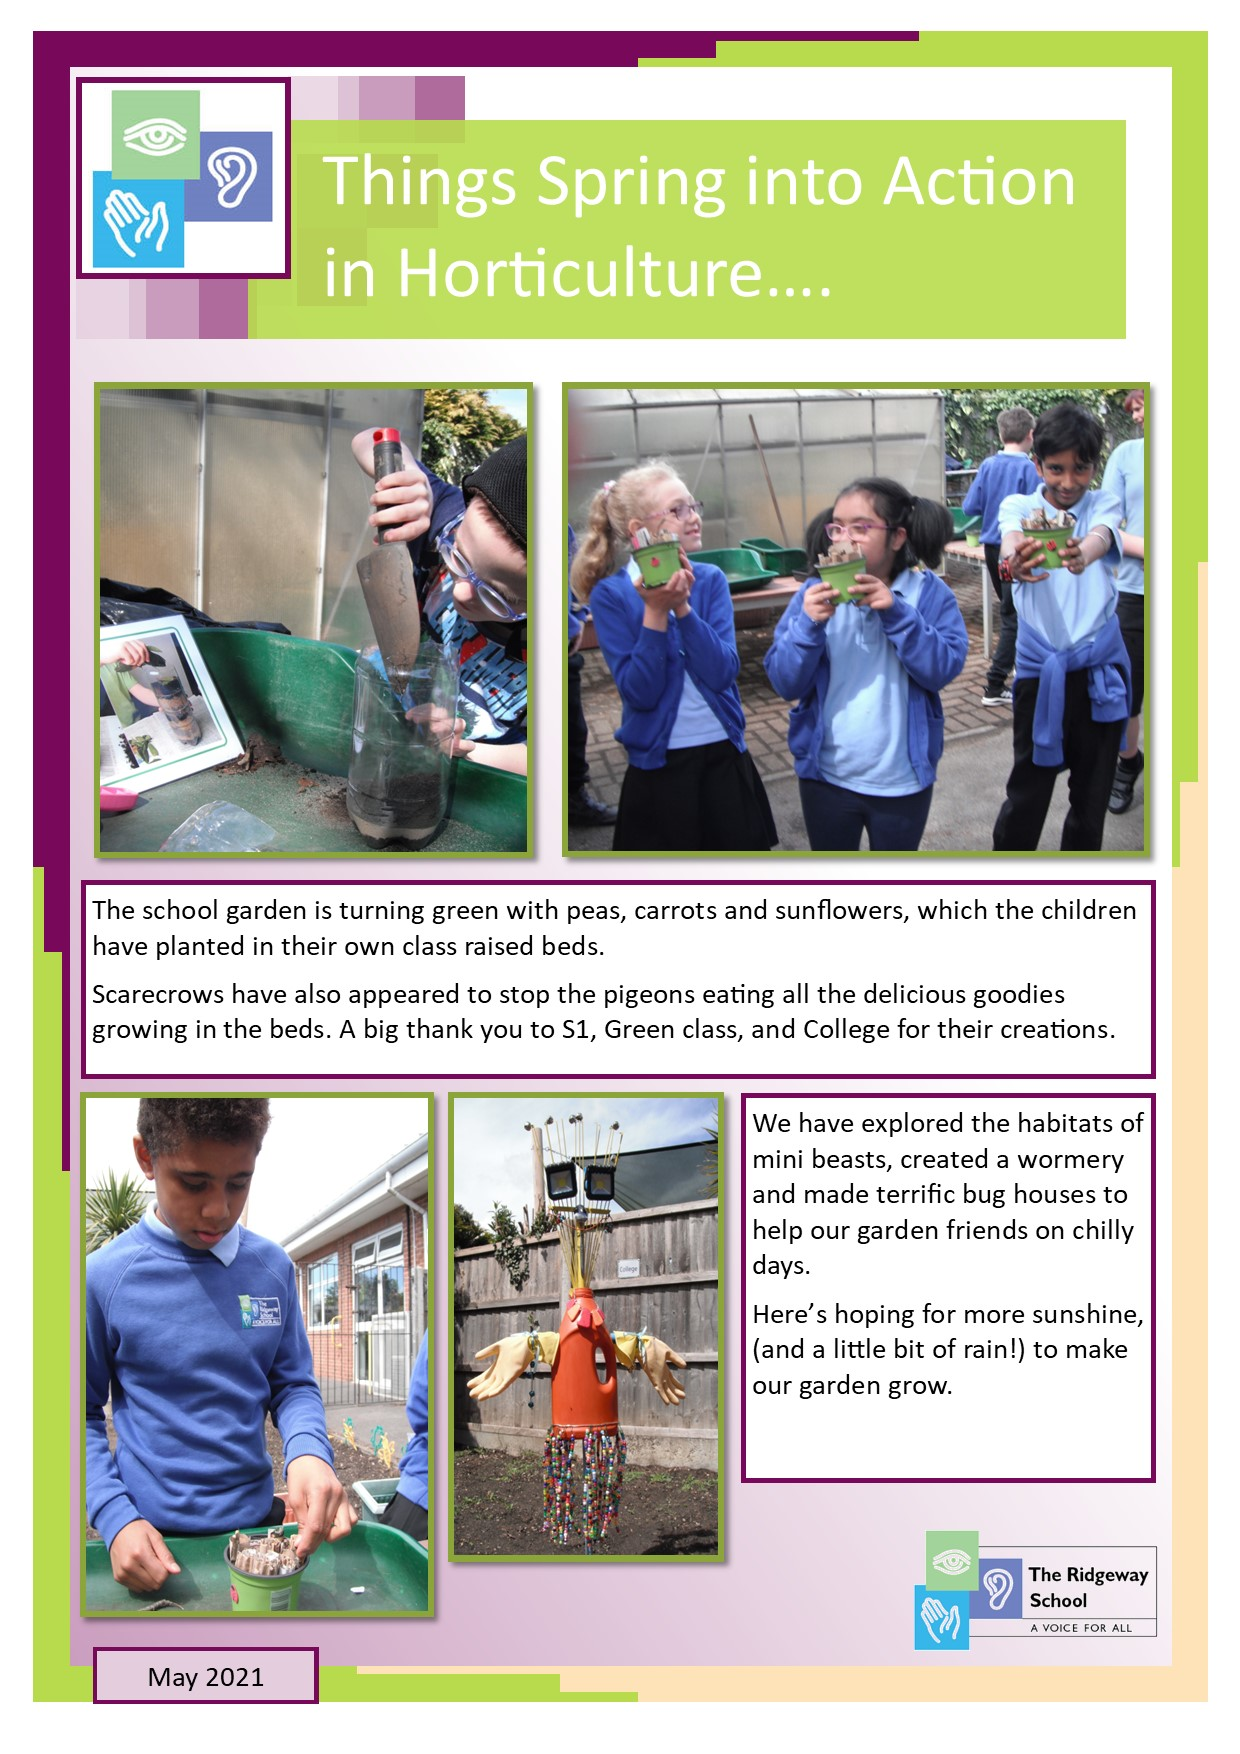 Horticulture News May21 v1.5